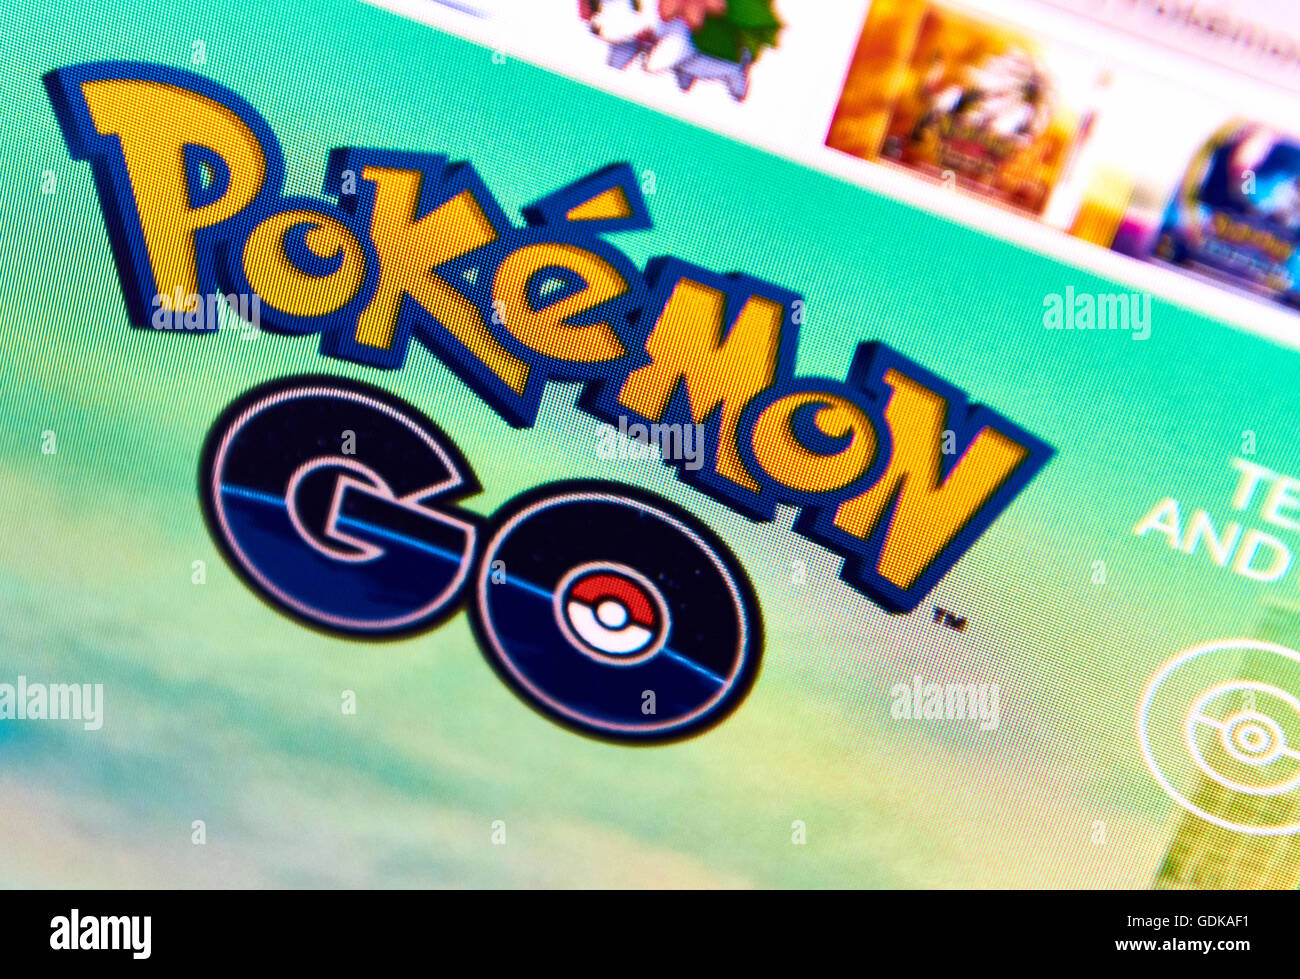 Pokemon Go home page on a monitor screen - Stock Image